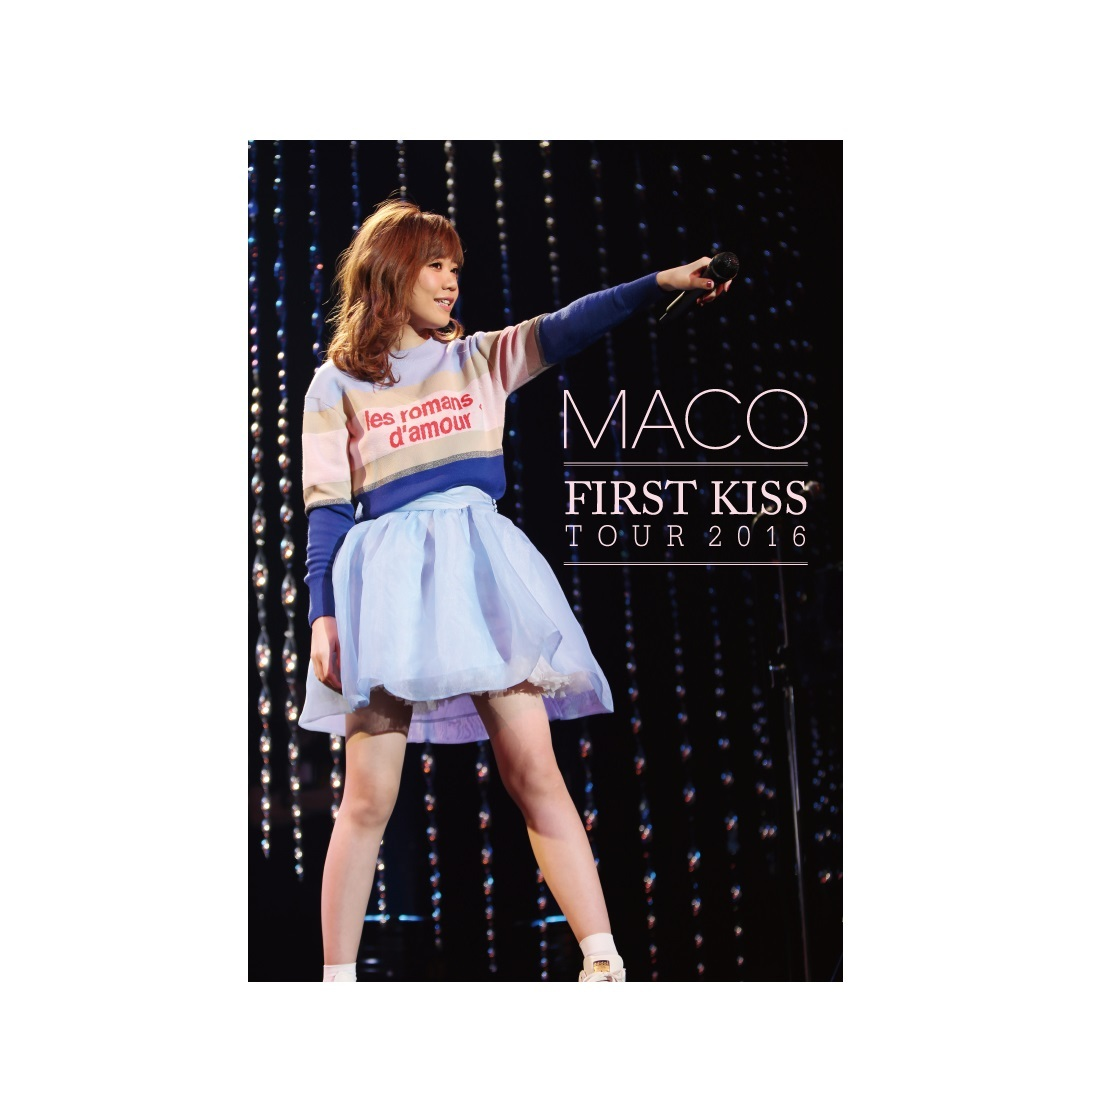 MACO -FIRST KISS- TOUR 2016 公式パンフレット